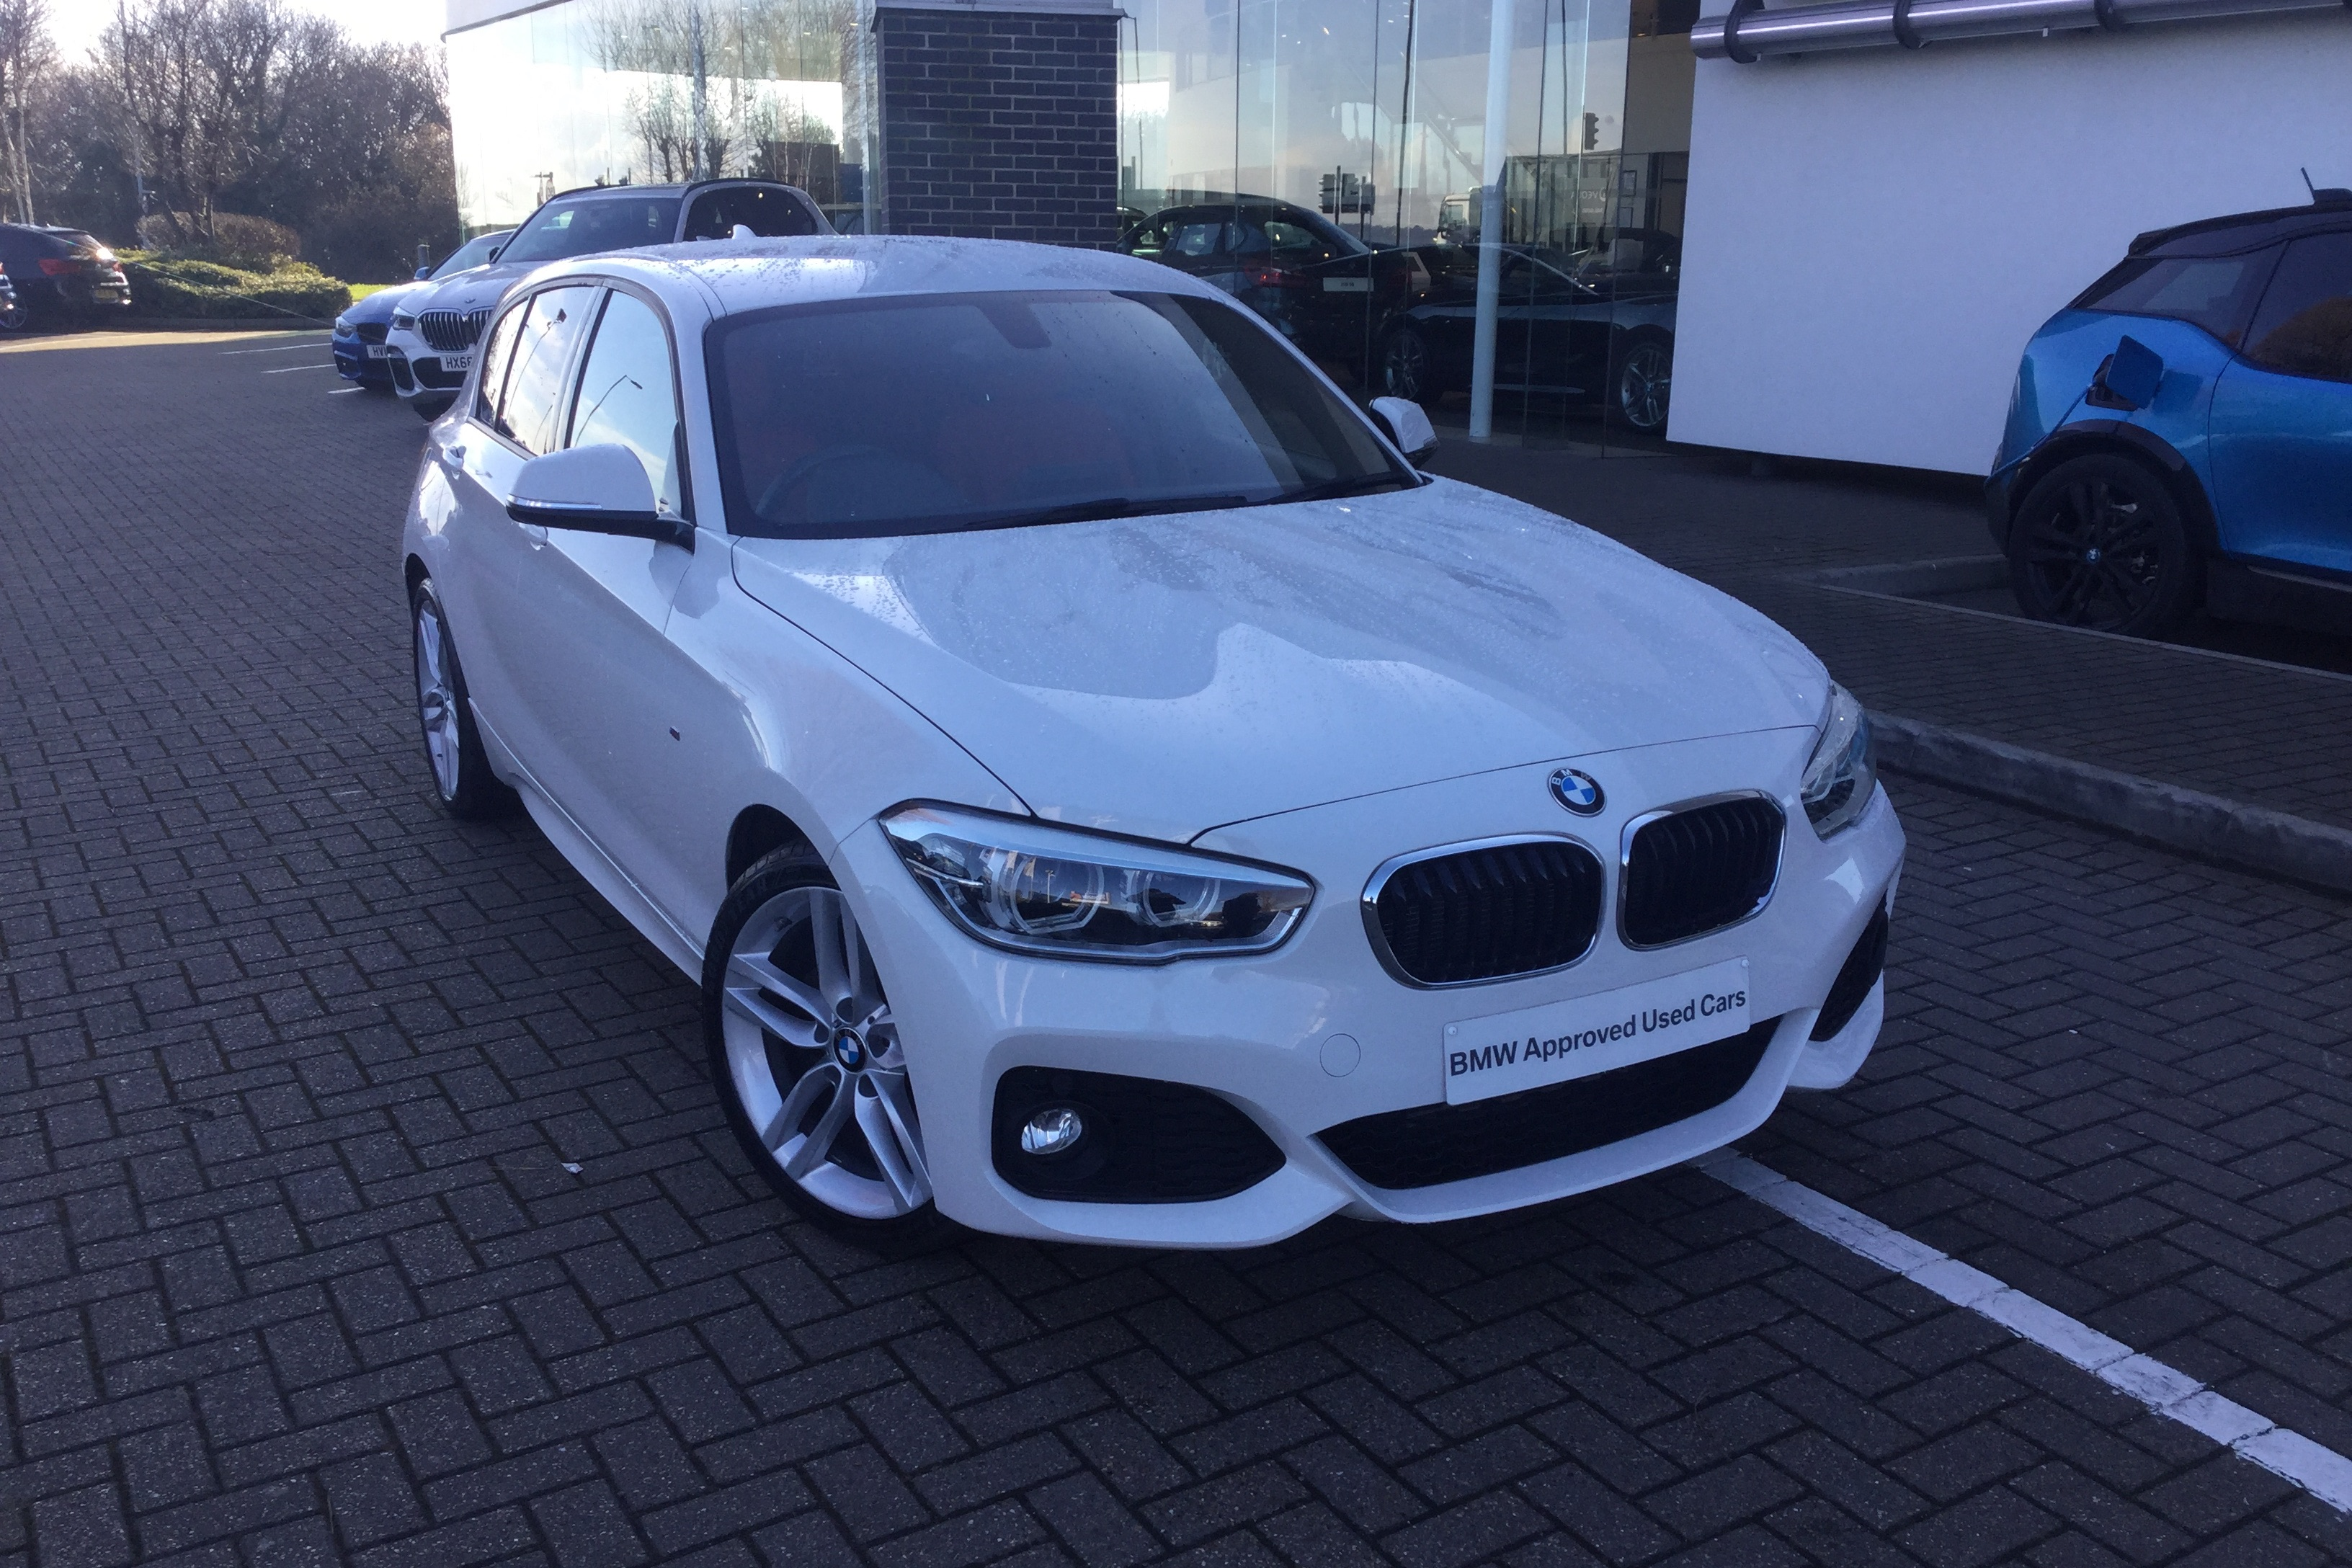 Bmw Used Cars Lovely Used Bmw Cars for Sale In Portsmouth Hampshire